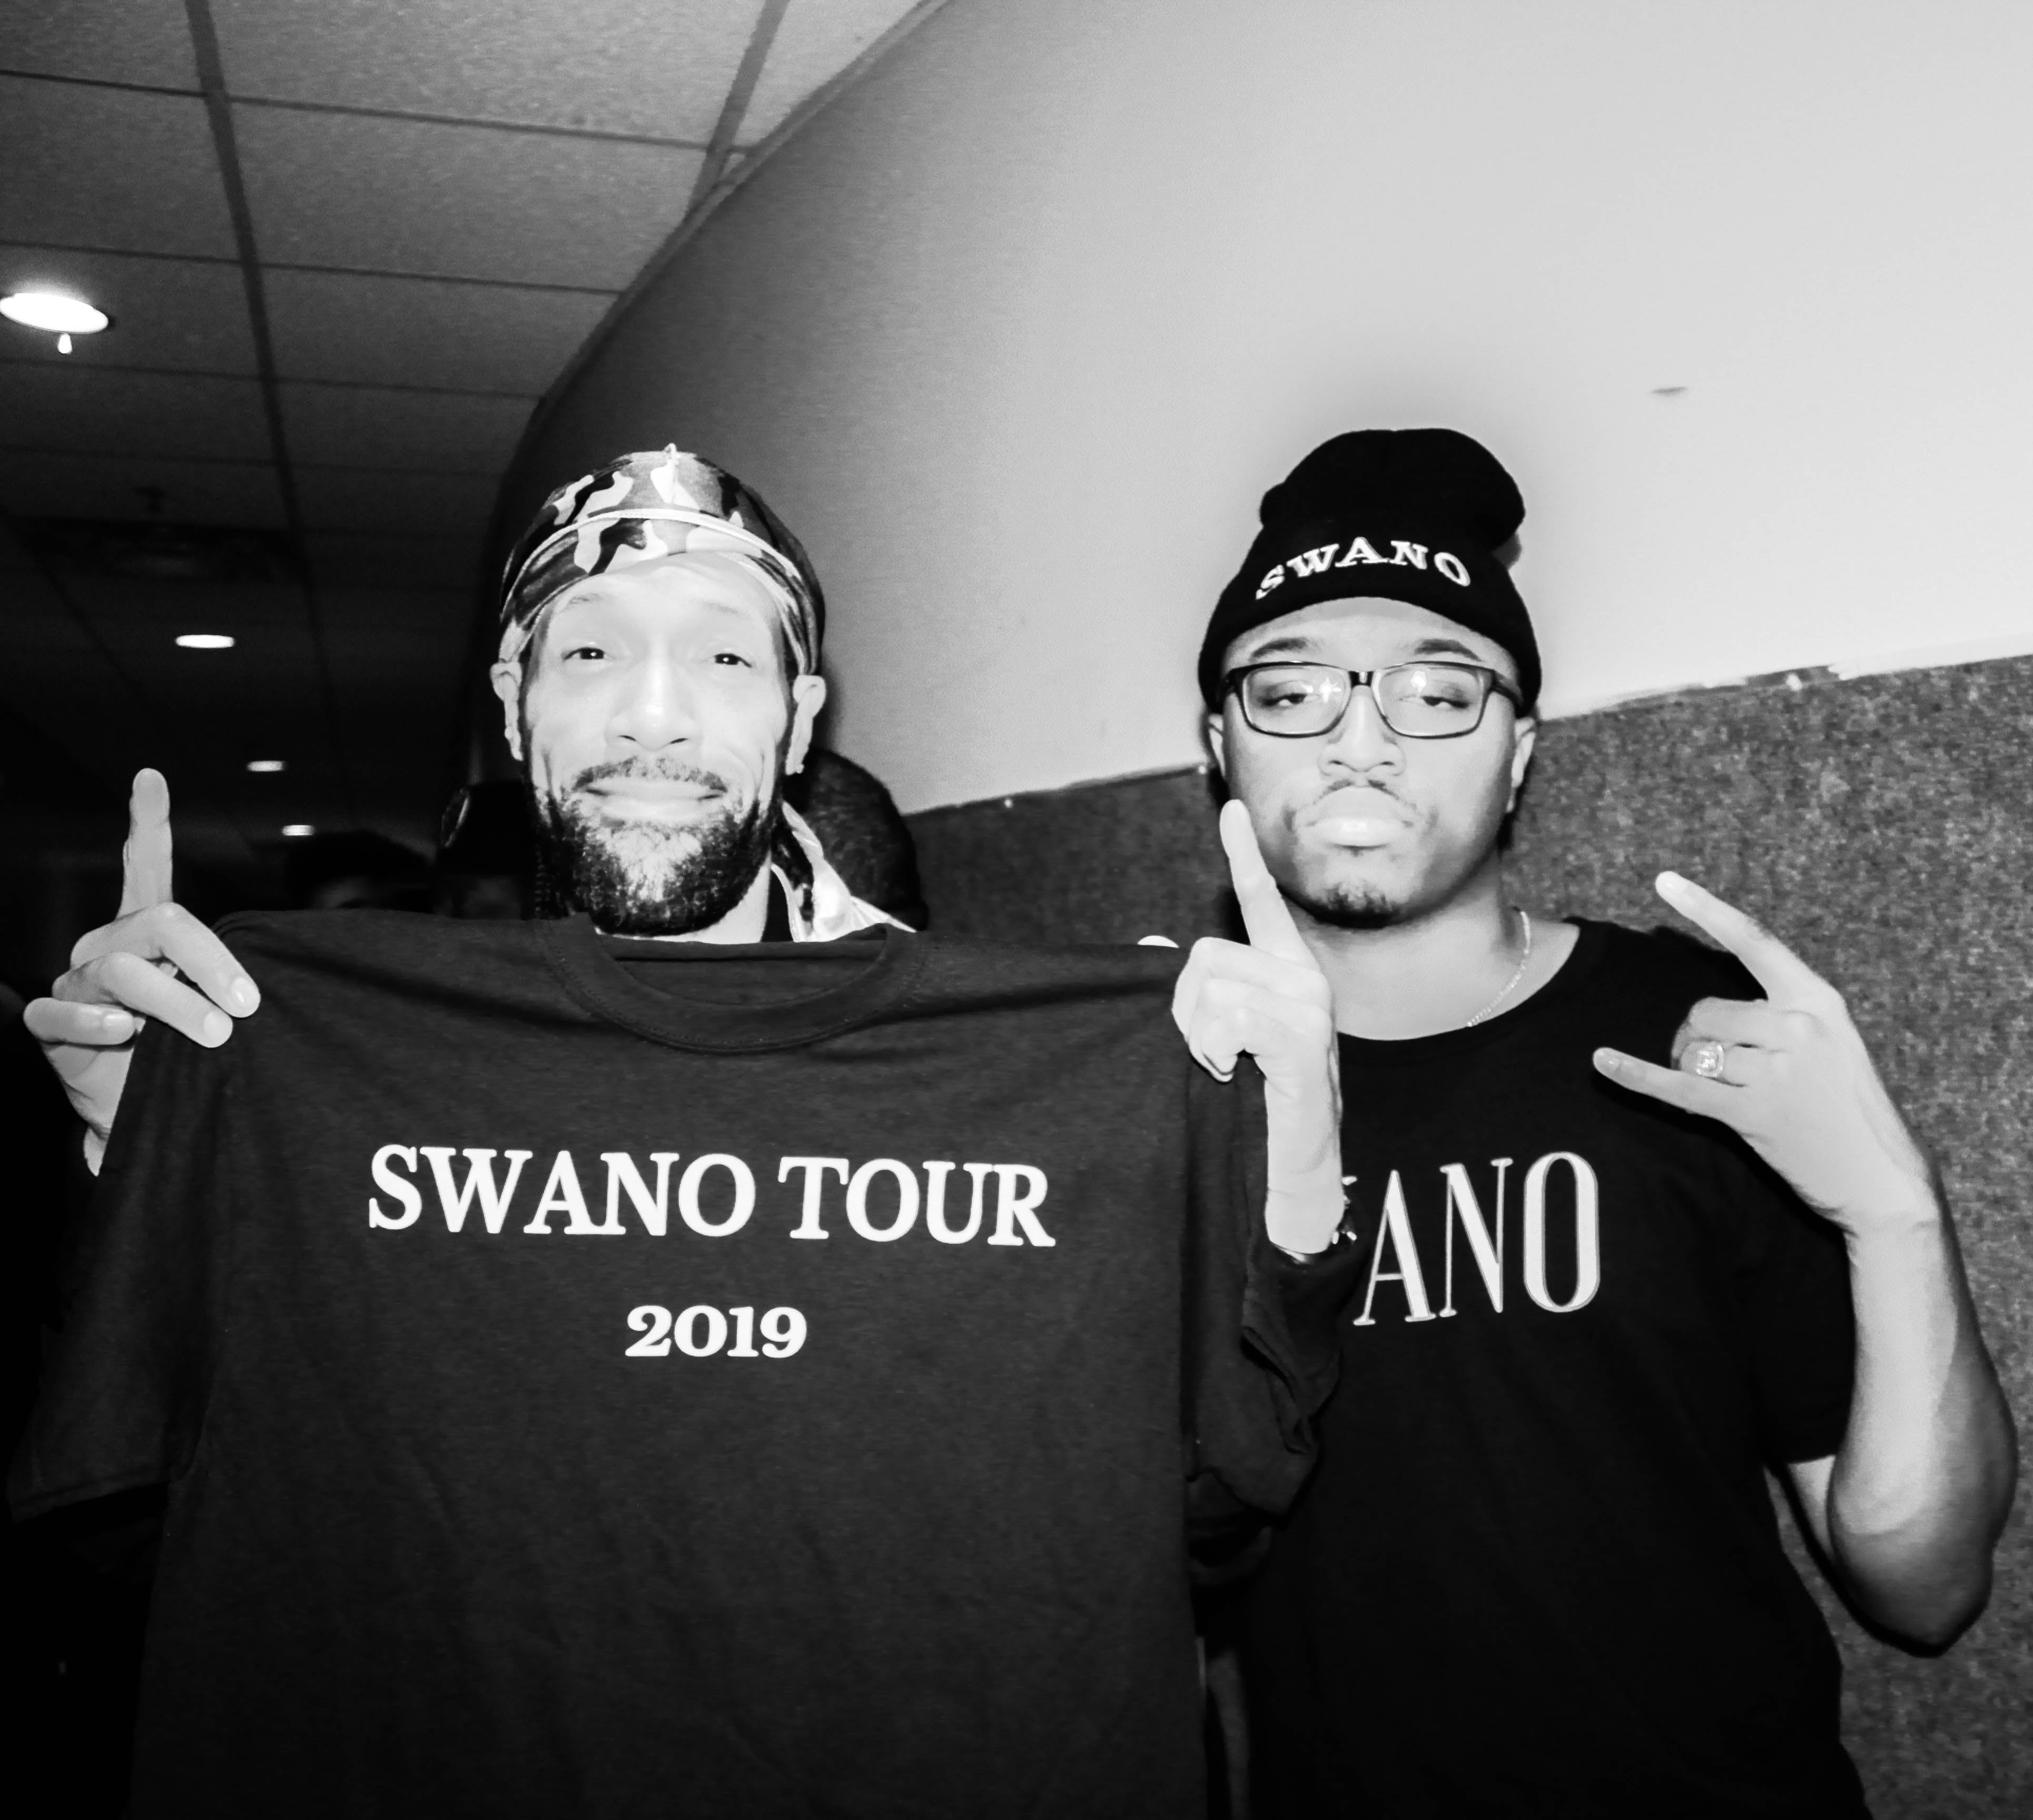 Official 2019 Swano Tour Shirts - SwanoDown